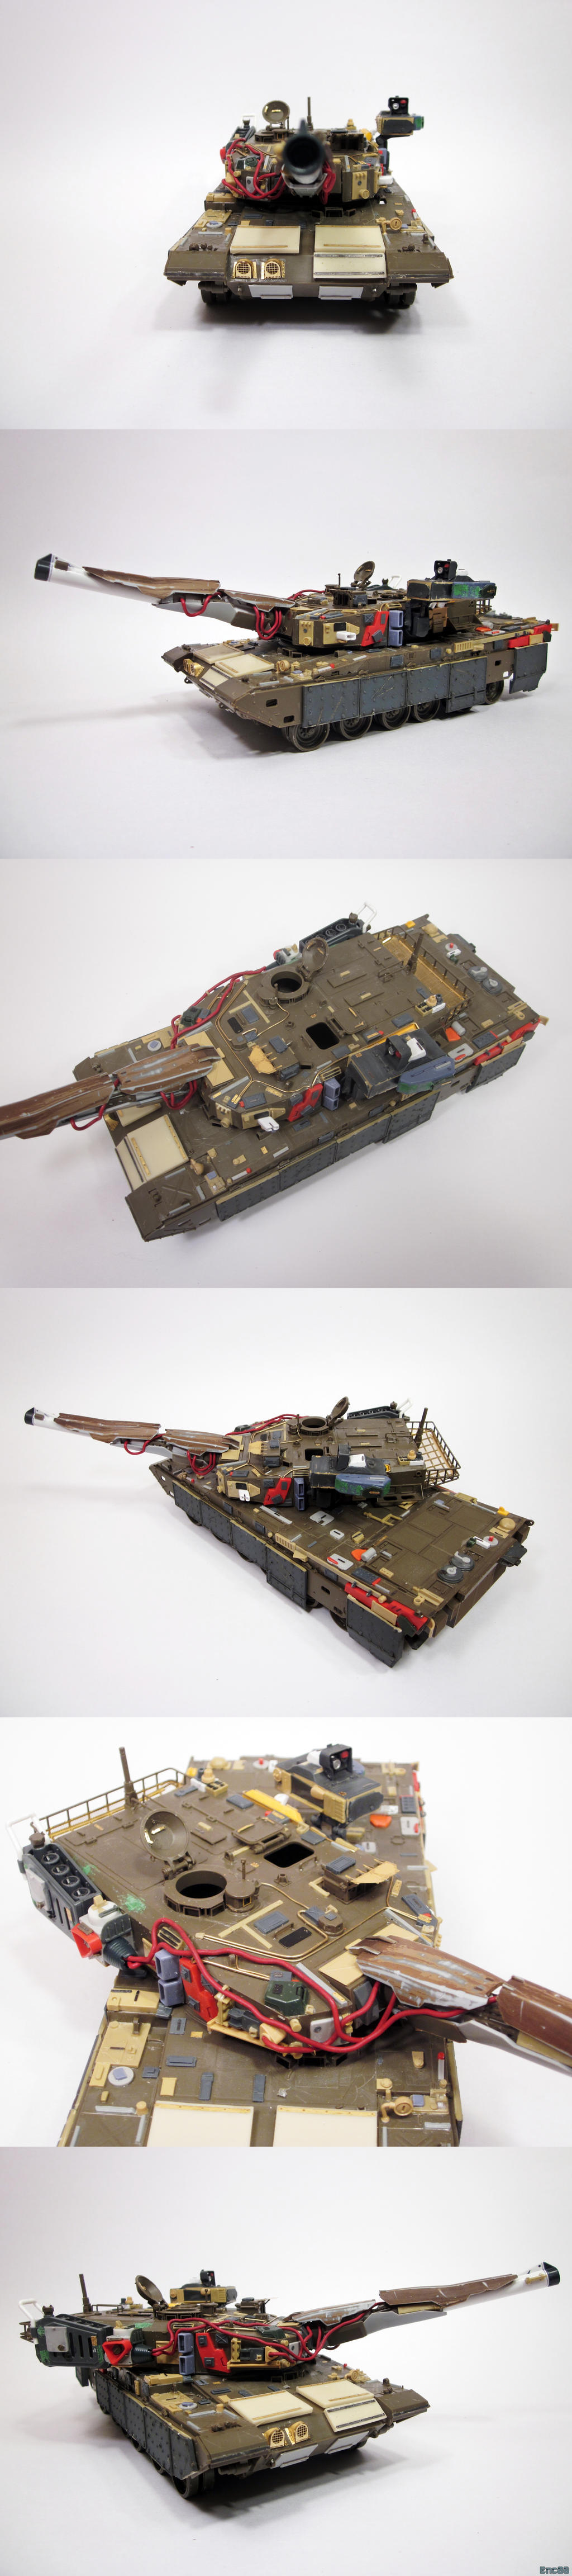 kitbashed tank befor the paint by enc86